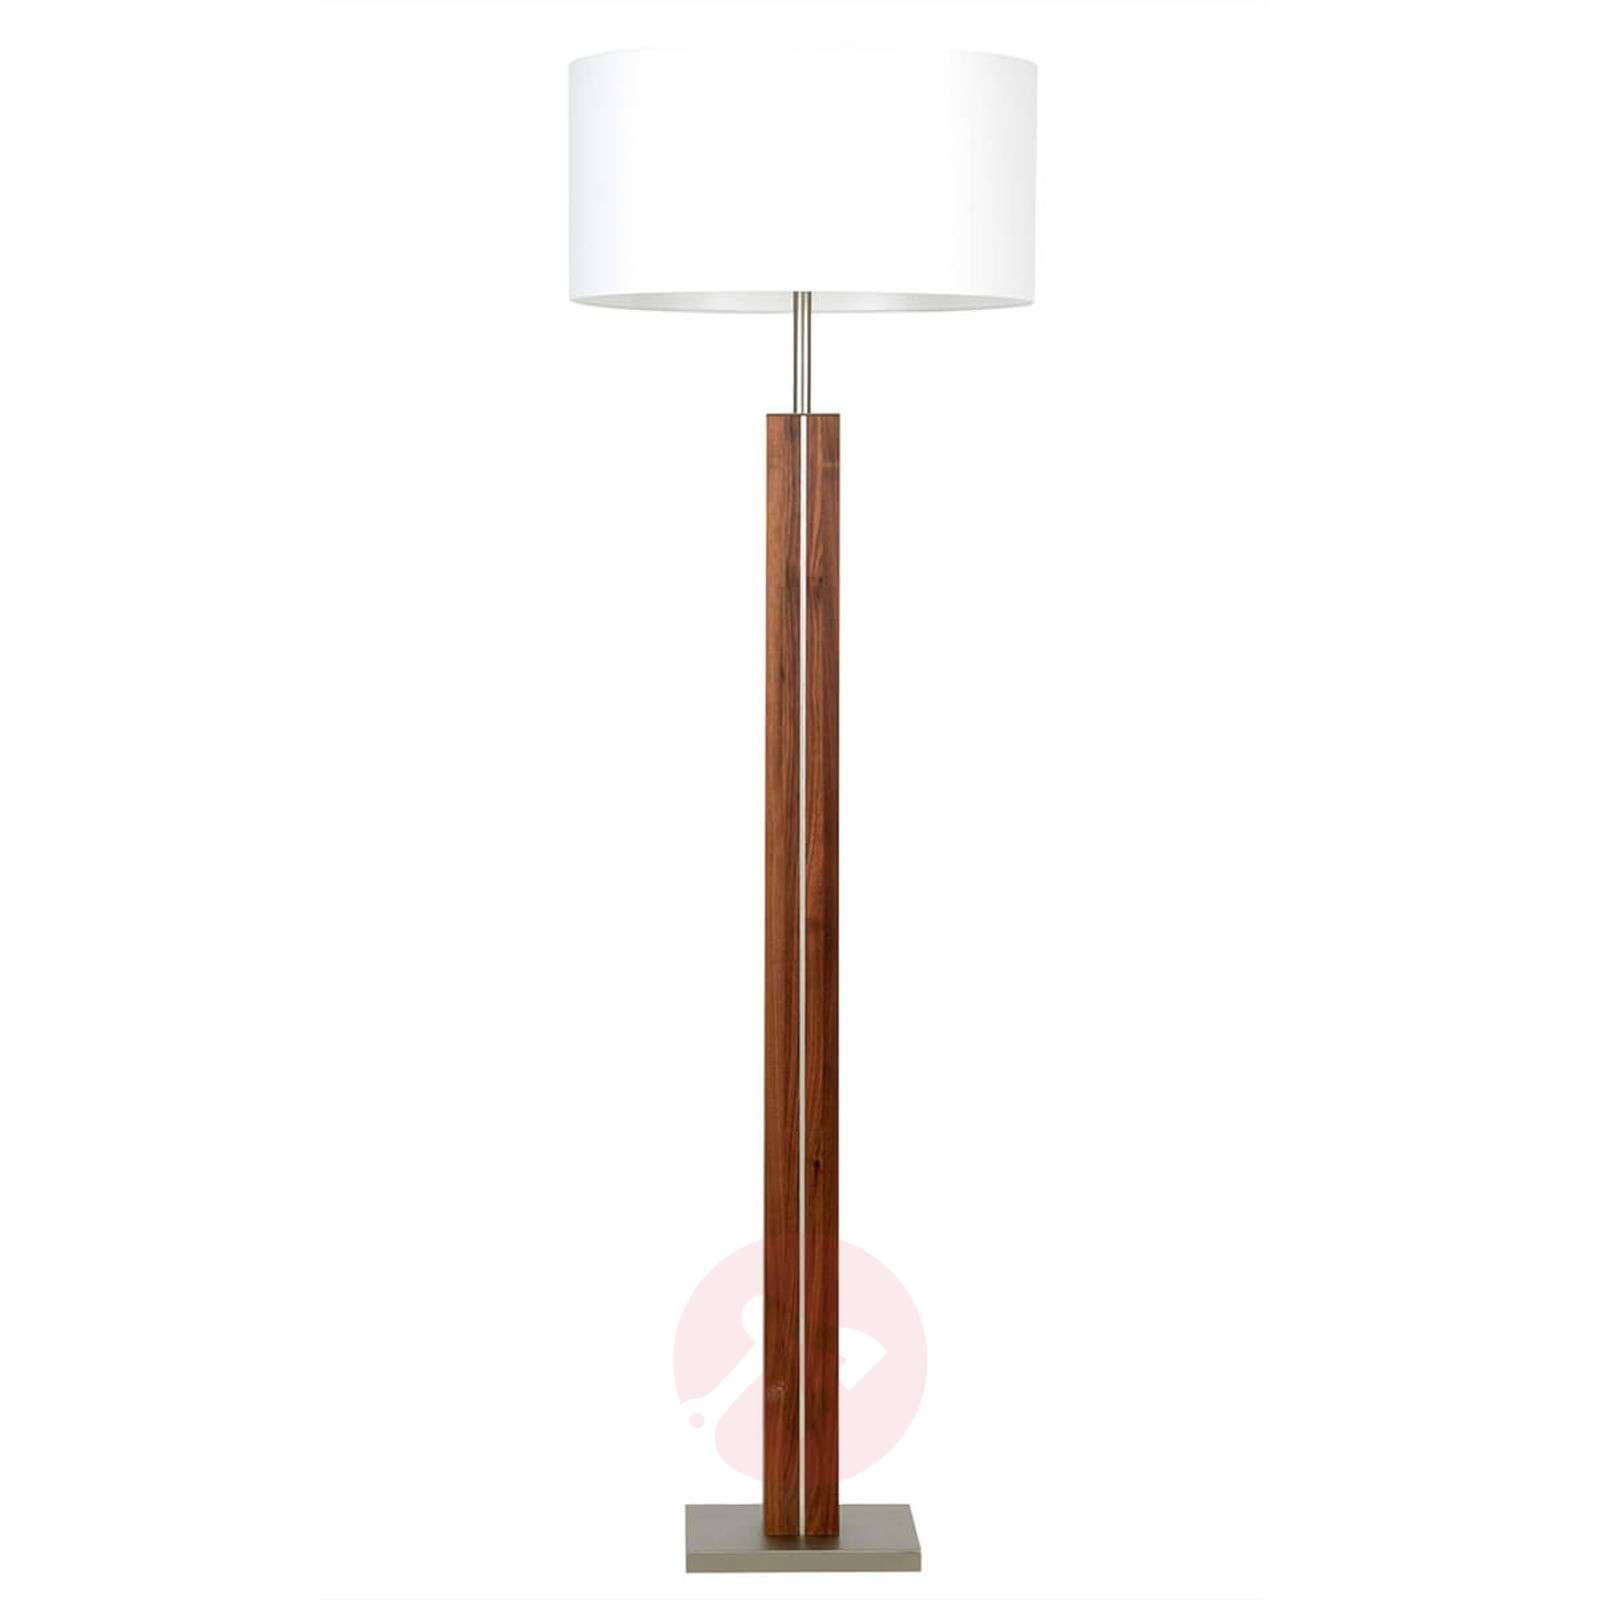 Wooden floor lamp dana with white fabric shade lights wooden floor lamp dana with white fabric shade 4543012 01 aloadofball Image collections